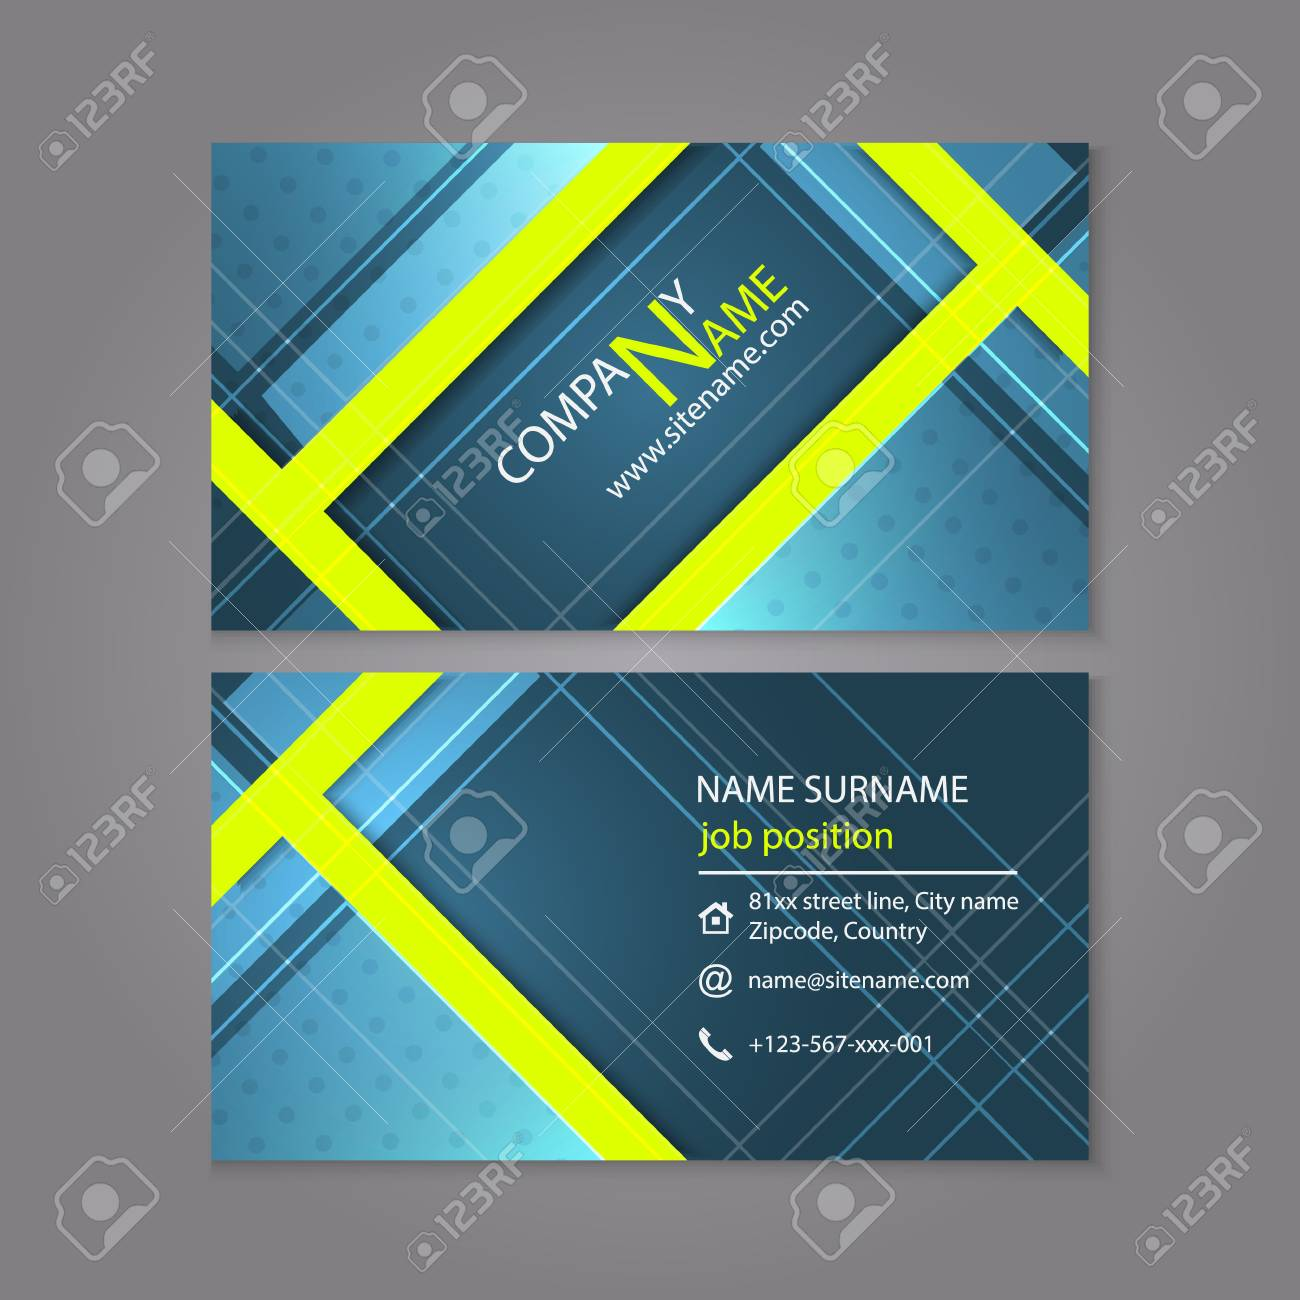 Professional Business Card Template Design Or Visiting Card Set